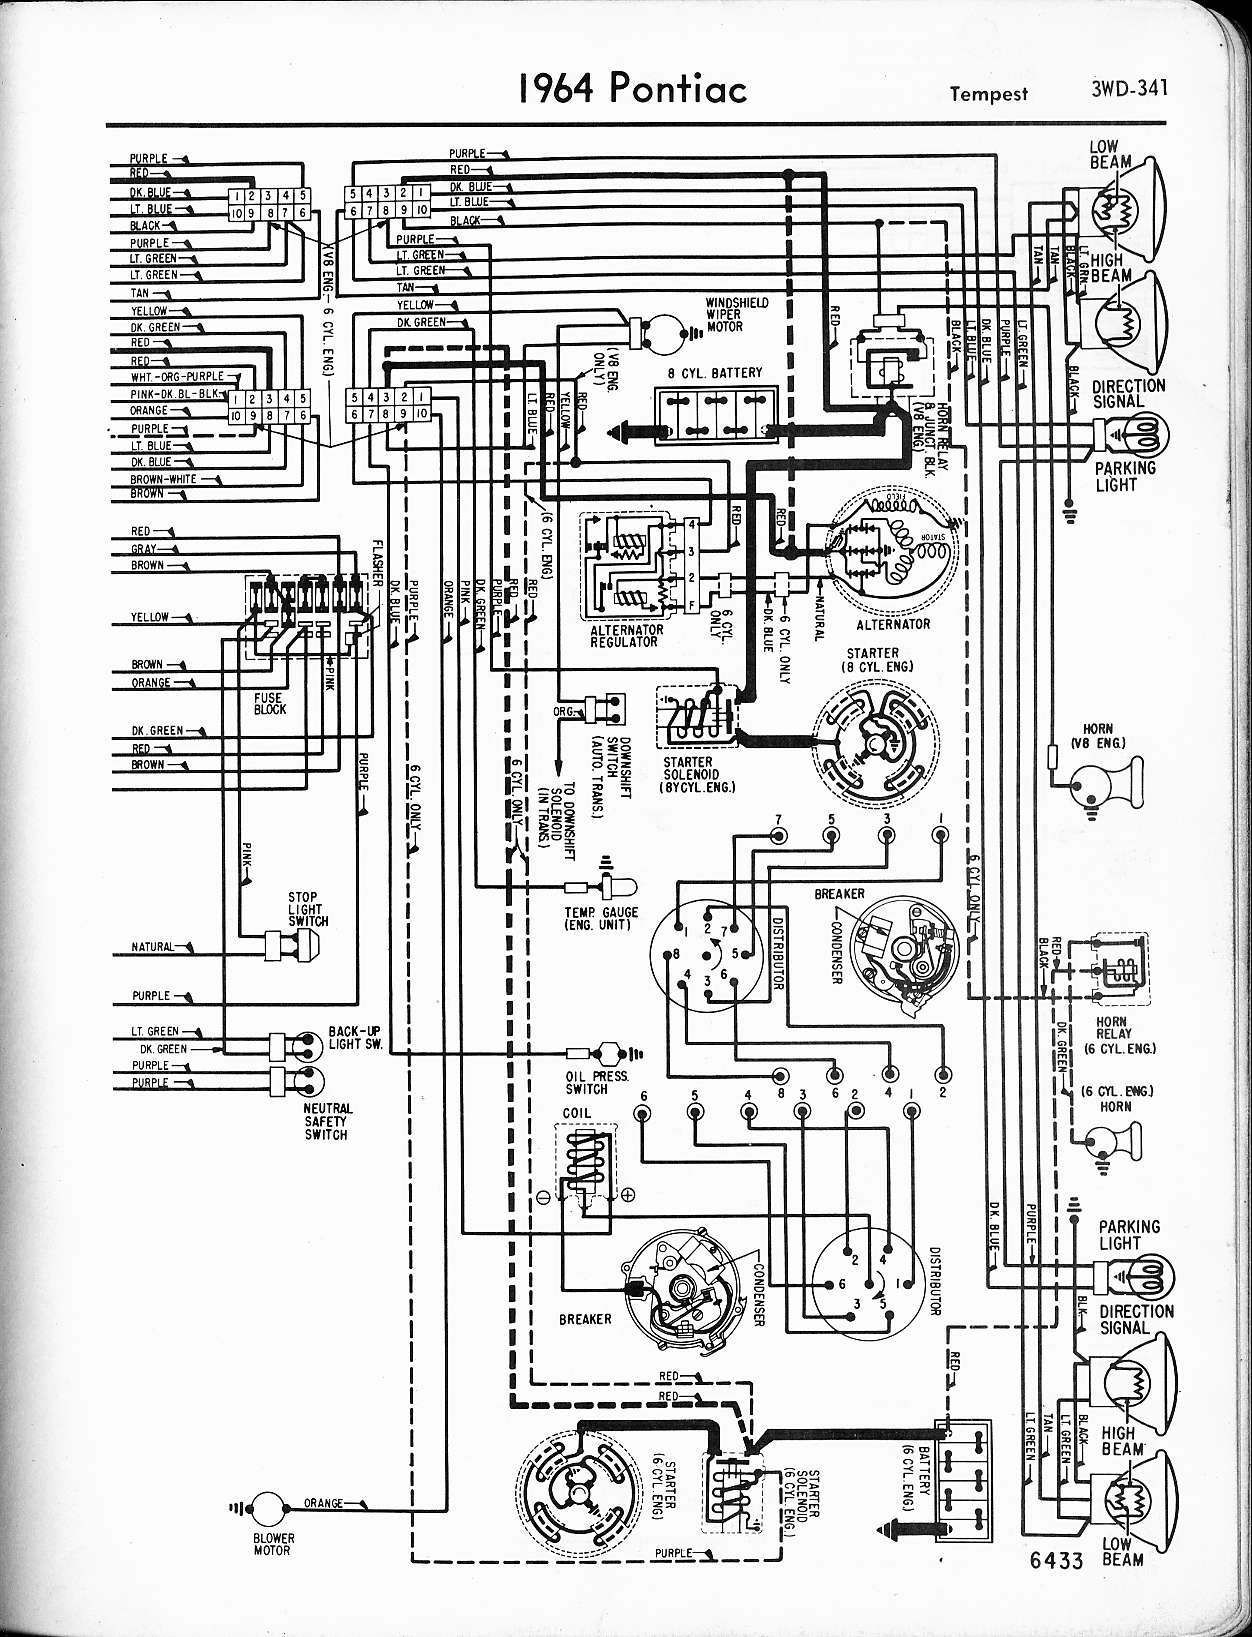 1965 pontiac catalina convertible wiring diagram 1966 pontiac catalina wiring diagram at w freeautoresponder